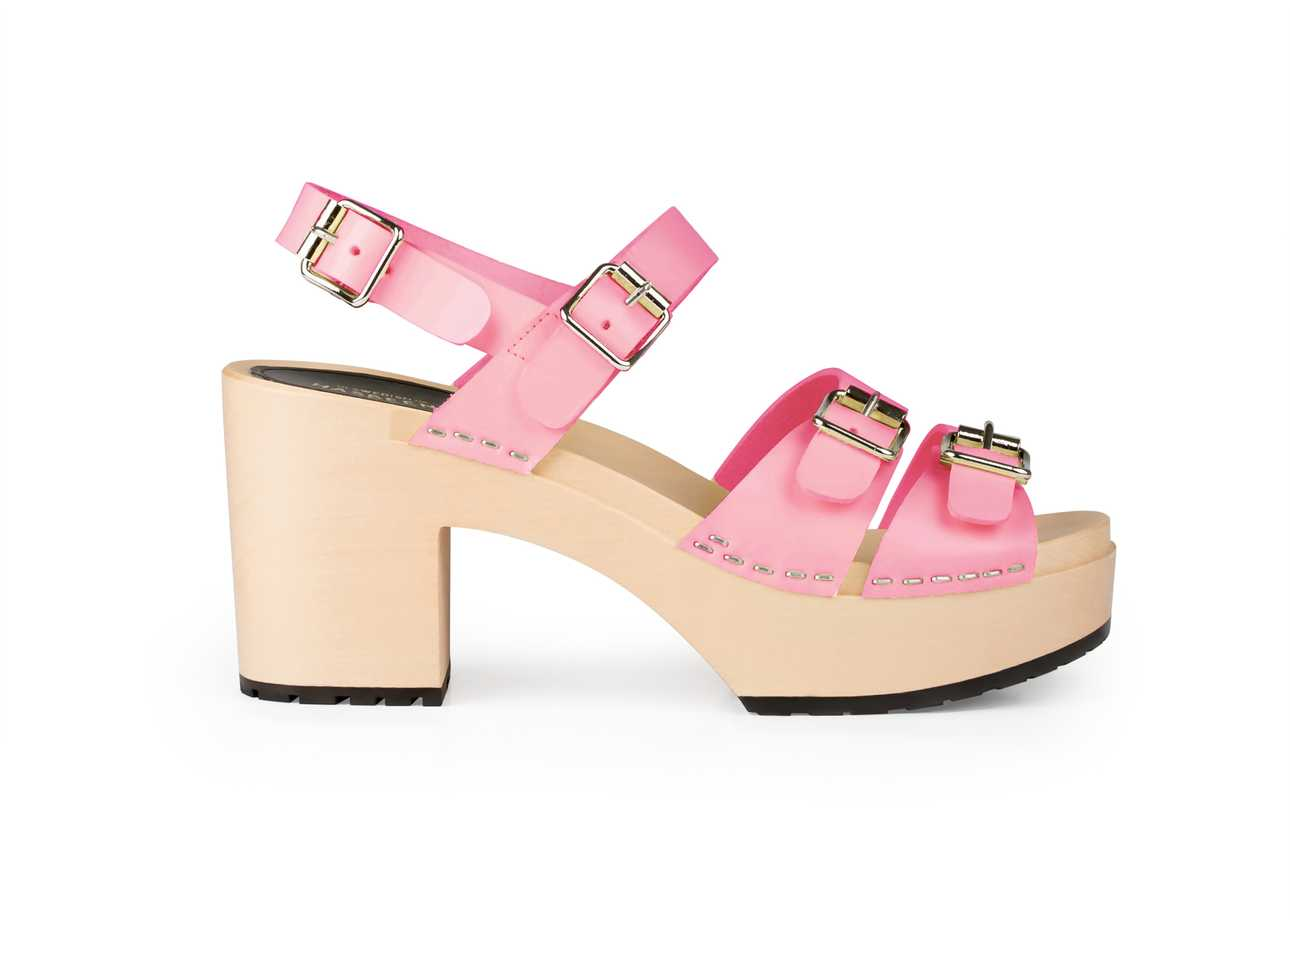 Buckle Sandal Bubble Gum Pink